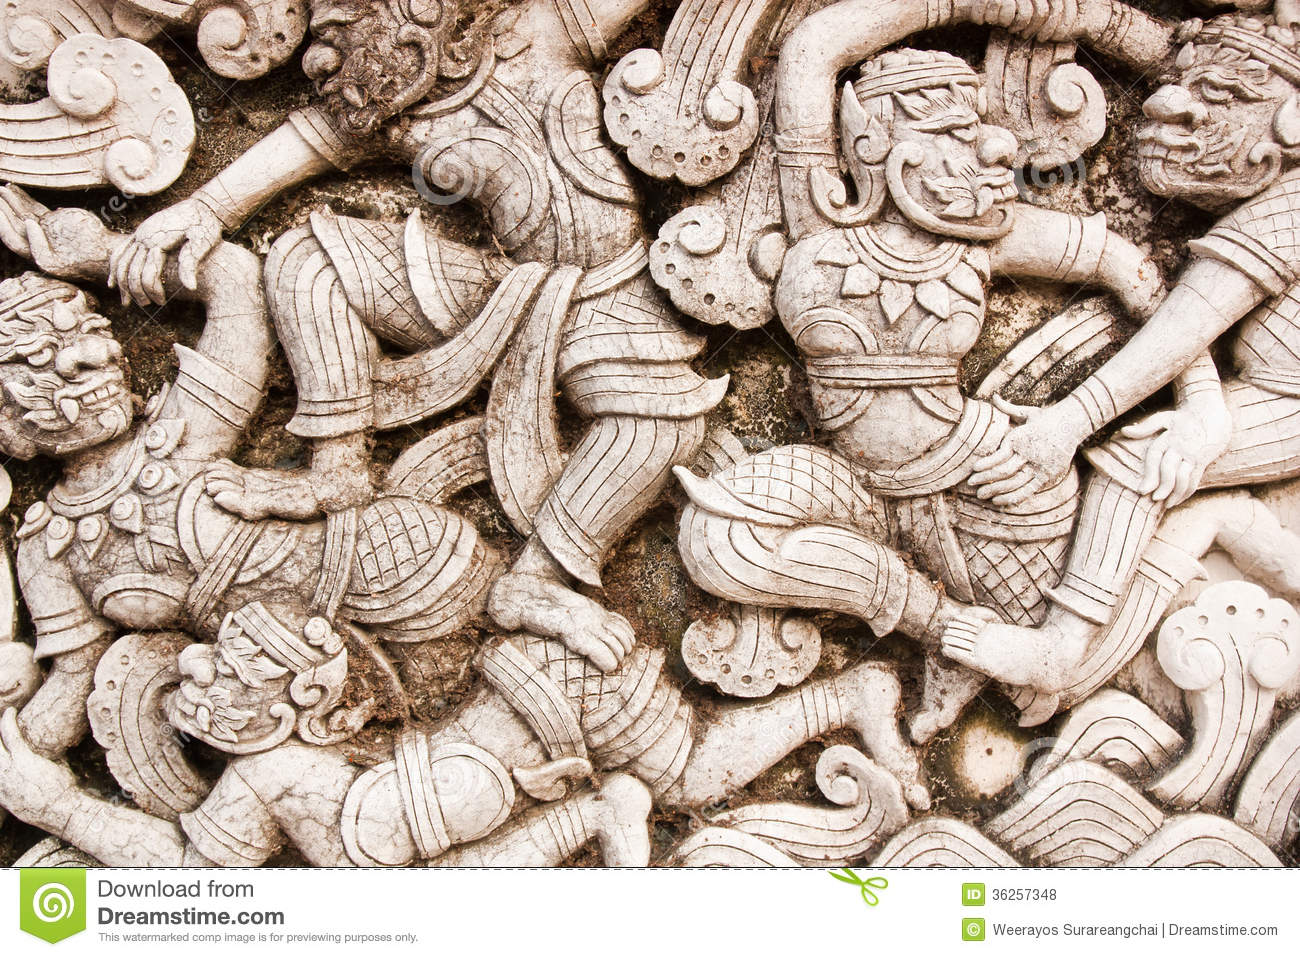 Sculpture stone carving royalty free stock photos image